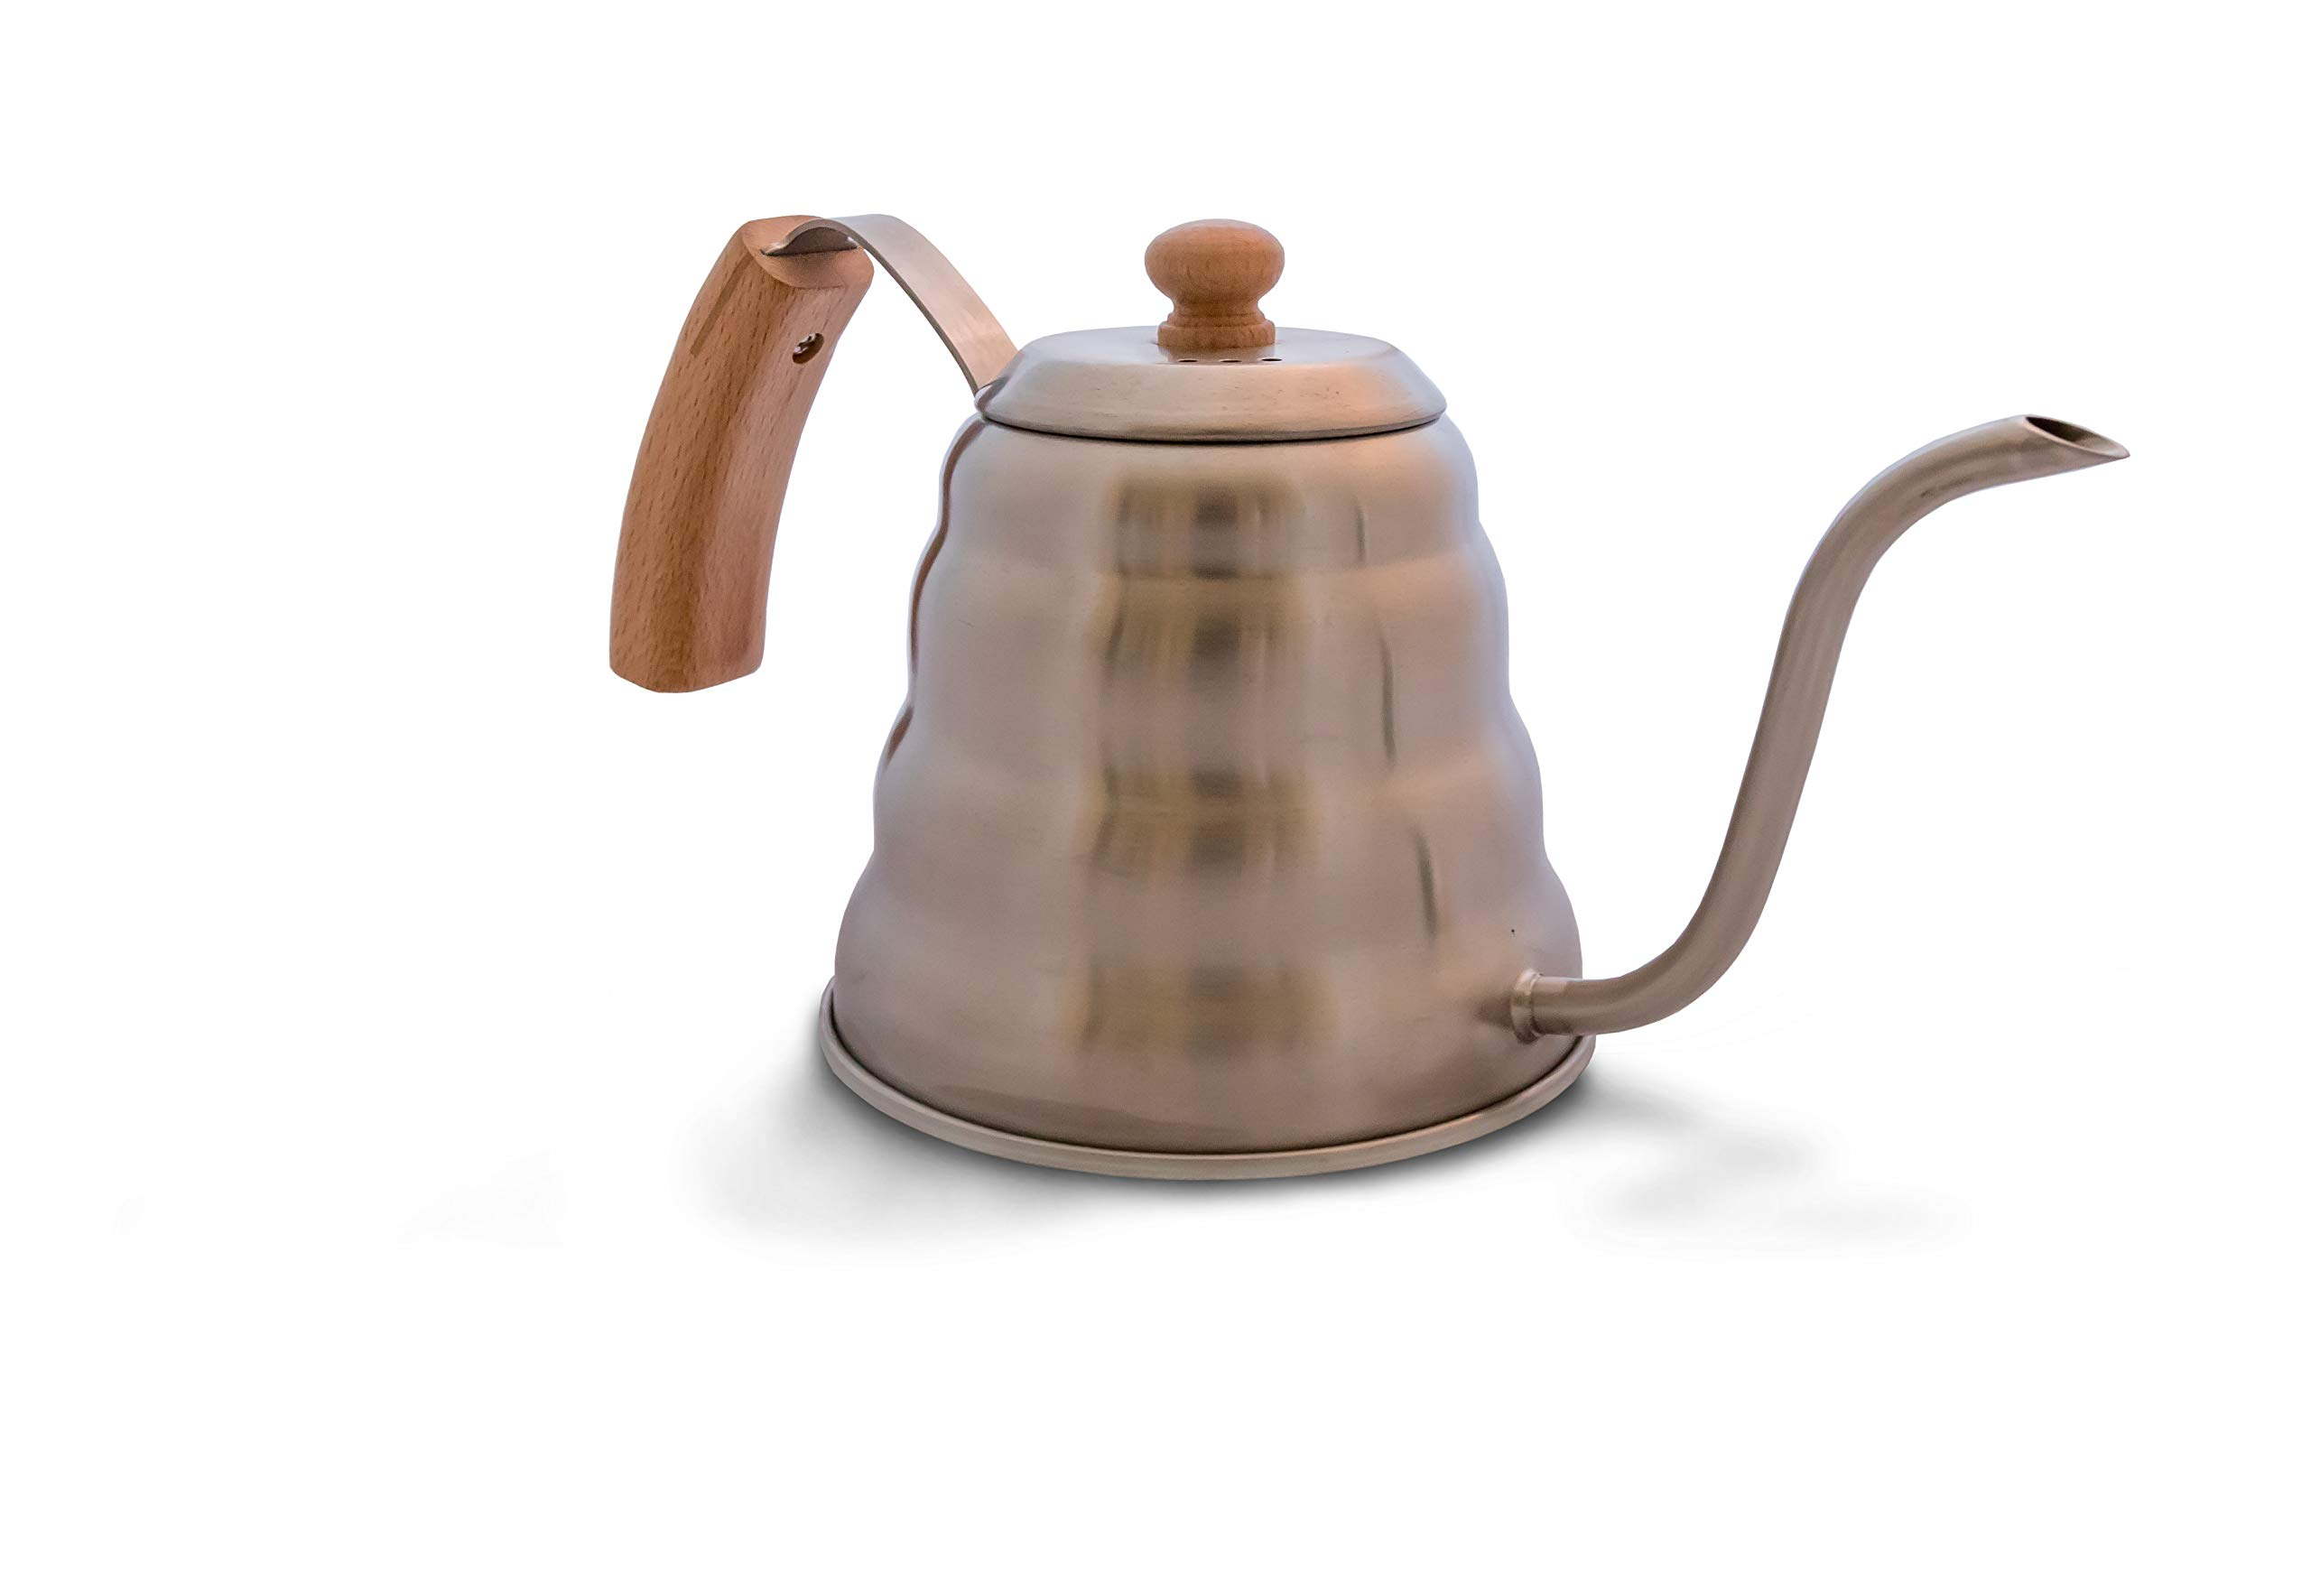 Heiwa Pouring Kettle w/Bamboo Handle, 1.2 litre - Barista or Homebrew for The Perfect Pour Over Coffee (Beechwood lid)